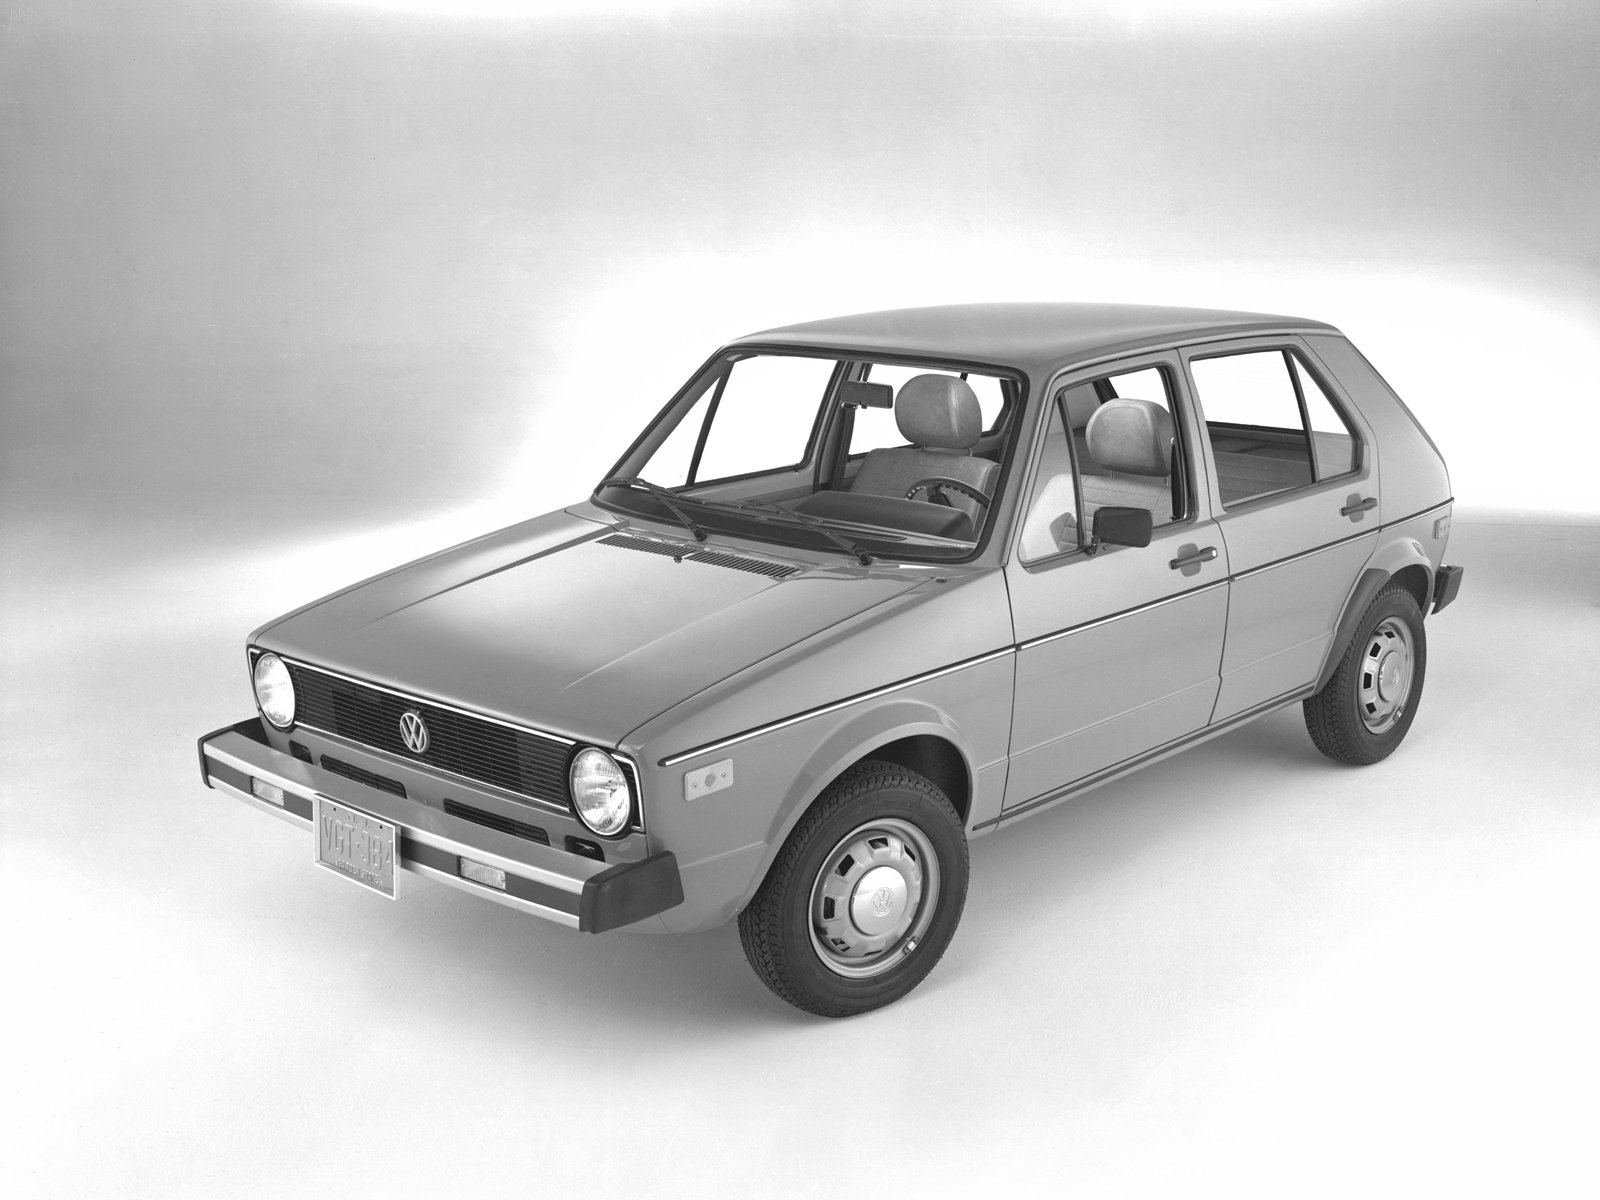 Volkswagen Rabbit (1977)